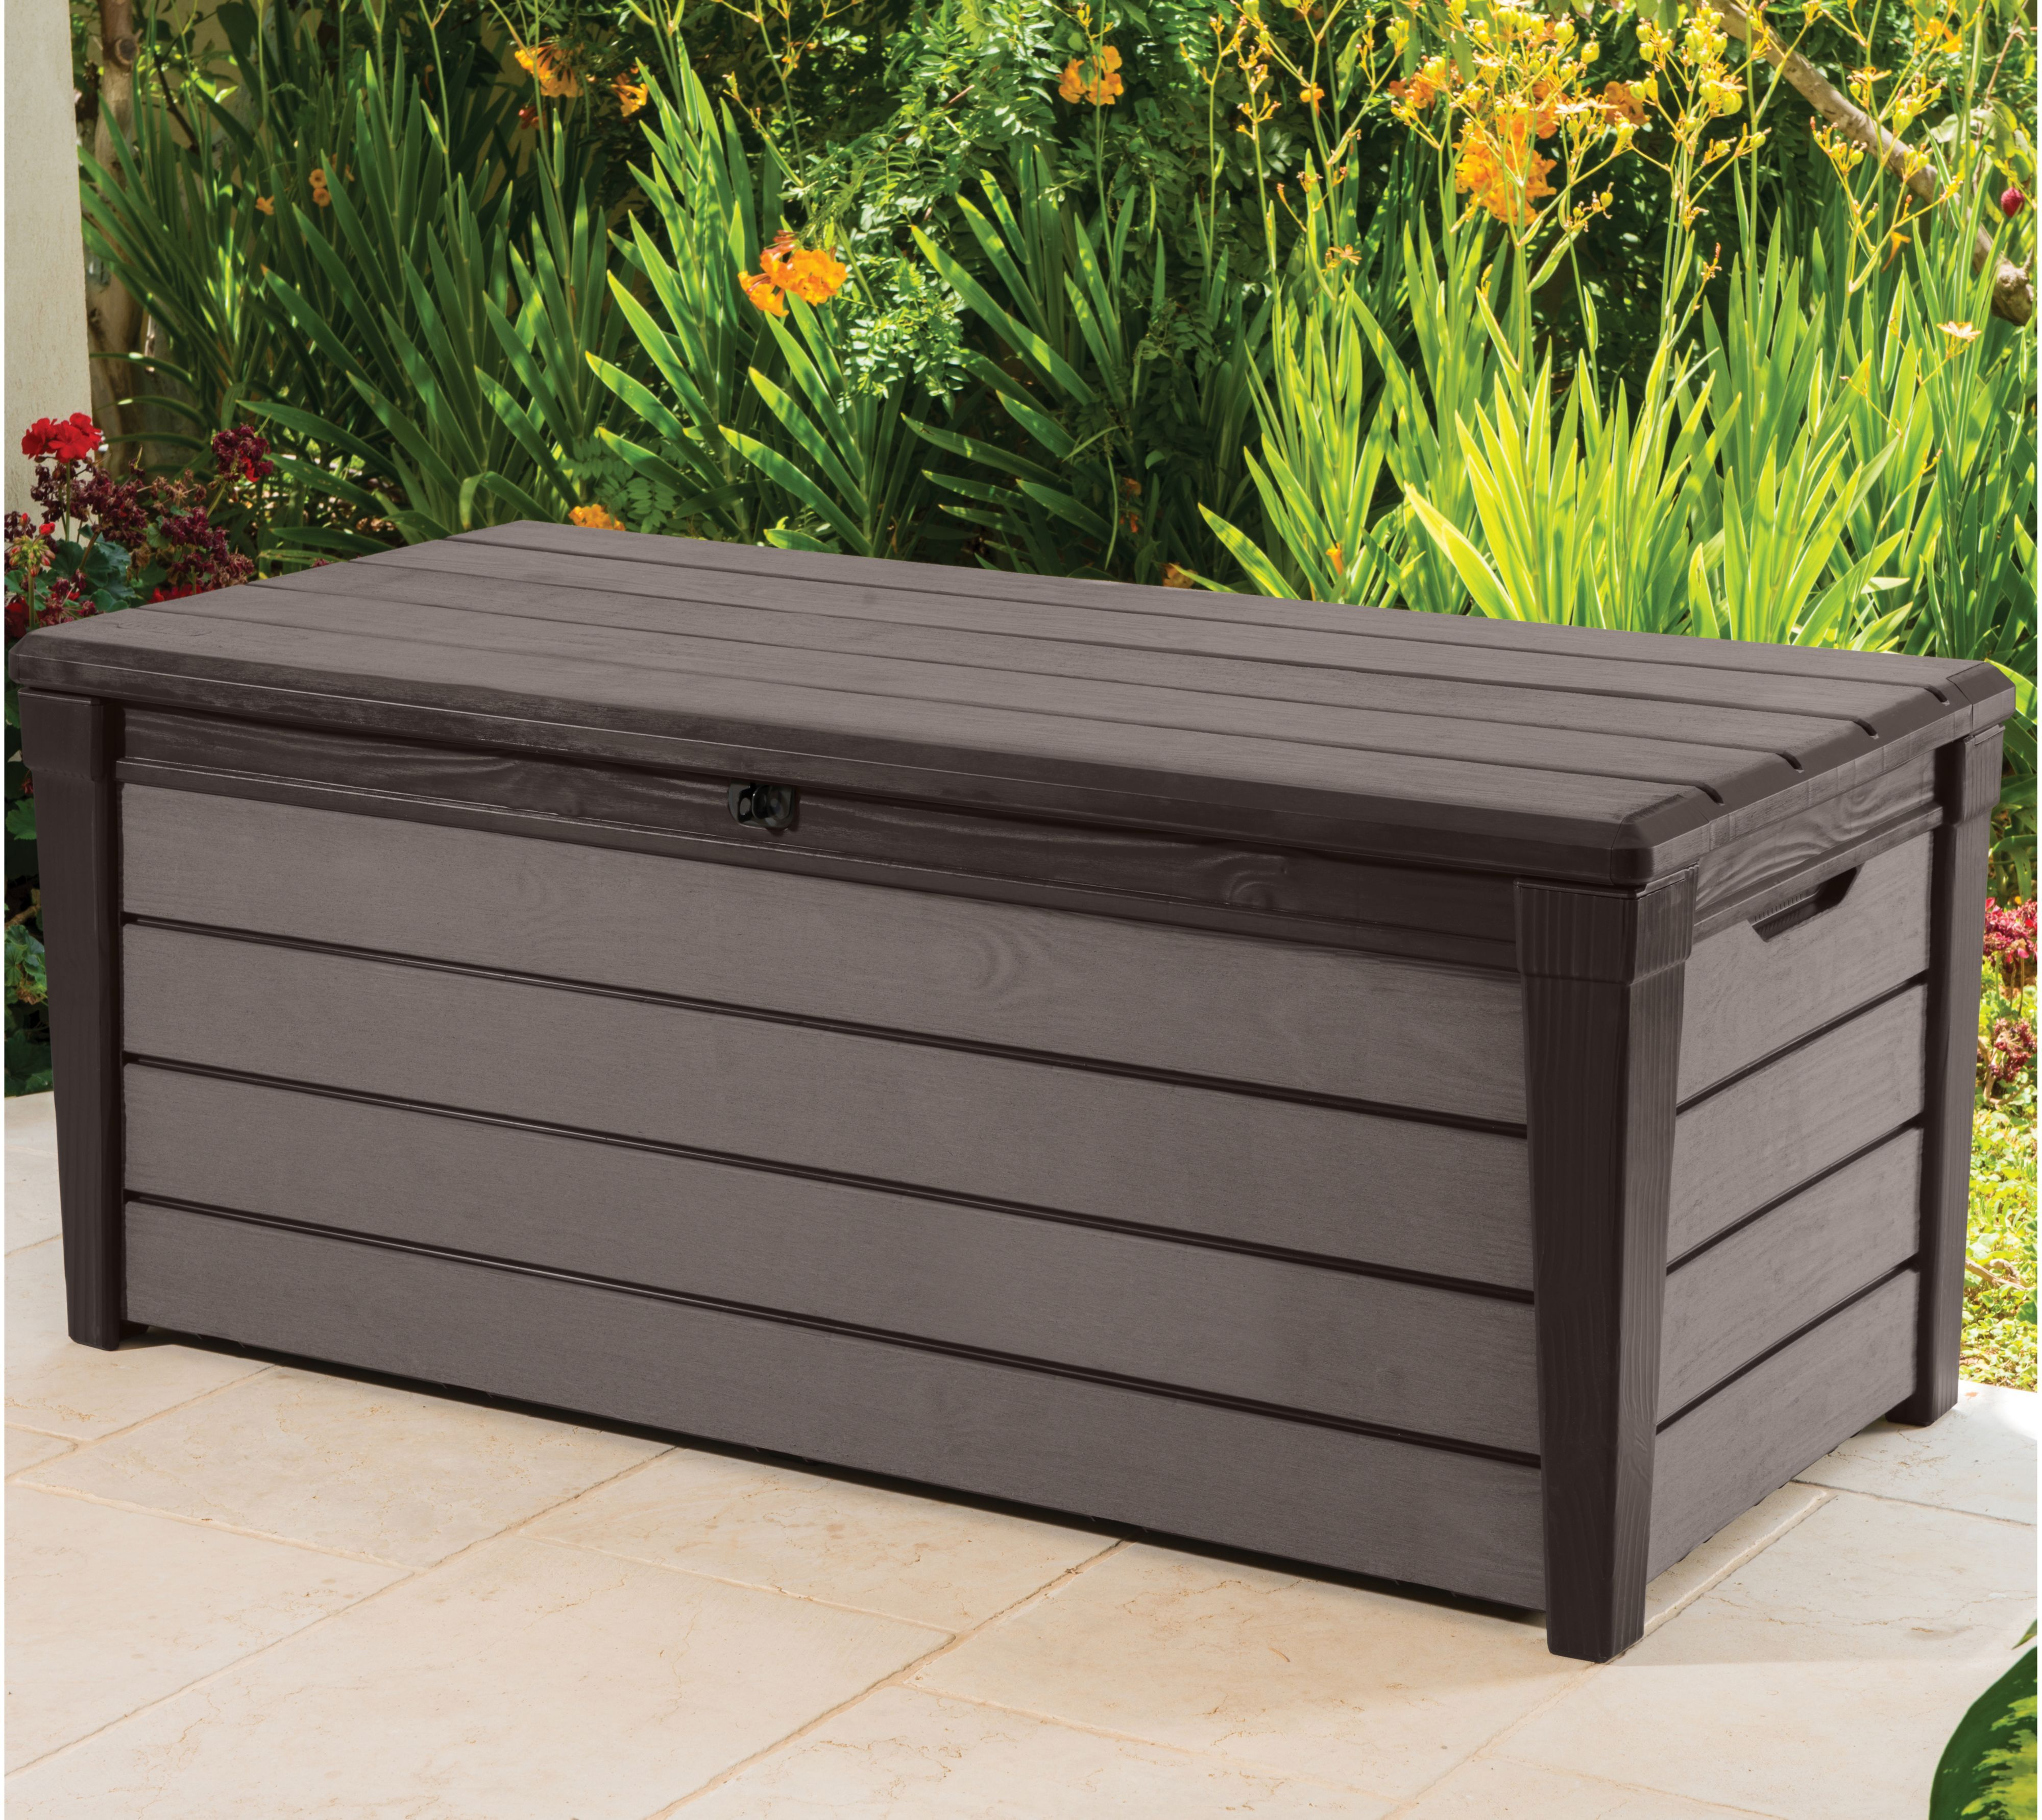 High Quality Brushwood Plastic Wood Effect Plastic Garden Storage Box   Bu0026Q For All Your  Home And Garden Supplies And Advice On All The Latest DIY Trends